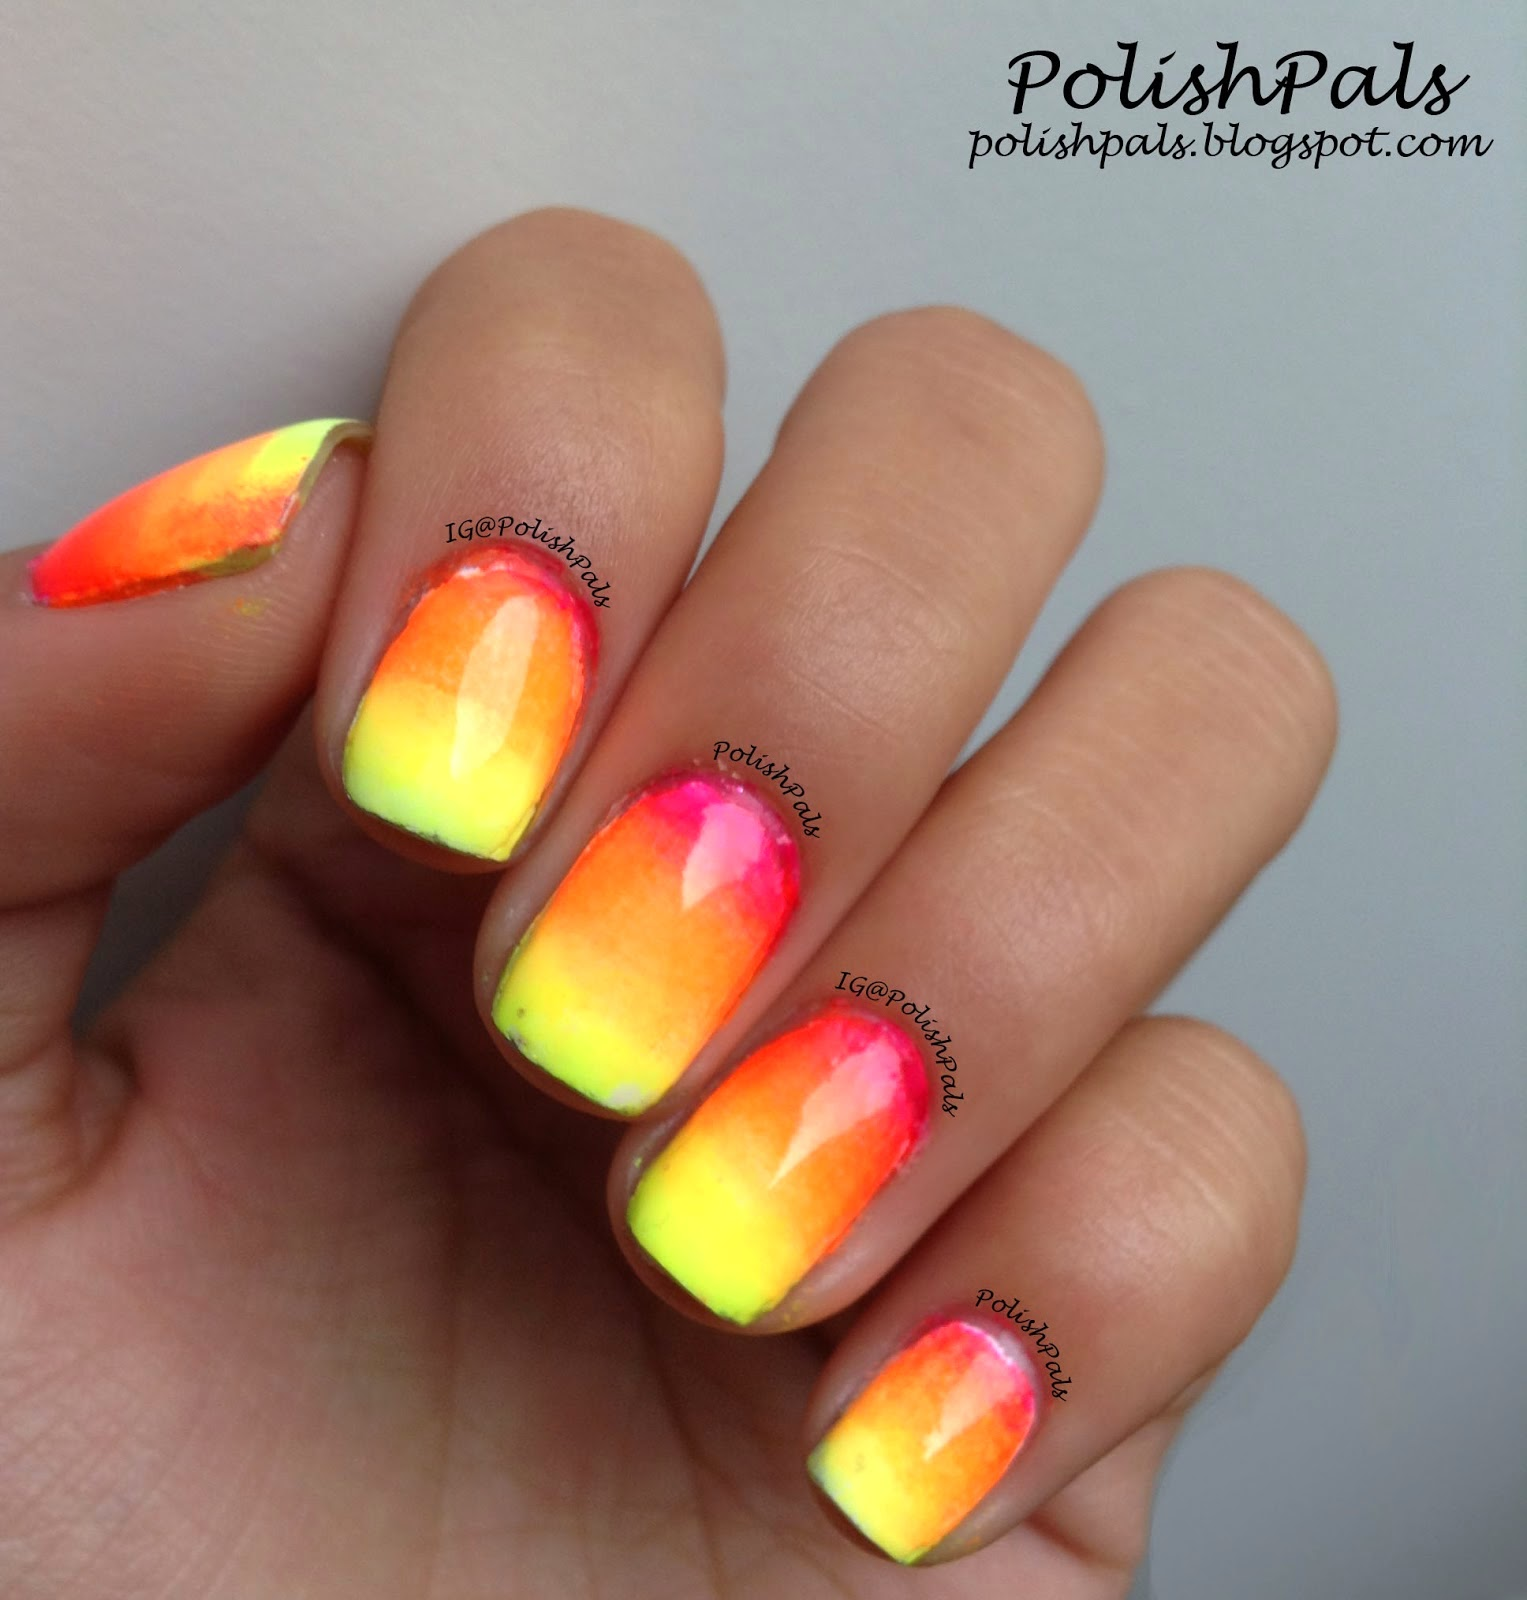 Summer Holiday Acrylic Nail Designs: Ofri sagy.